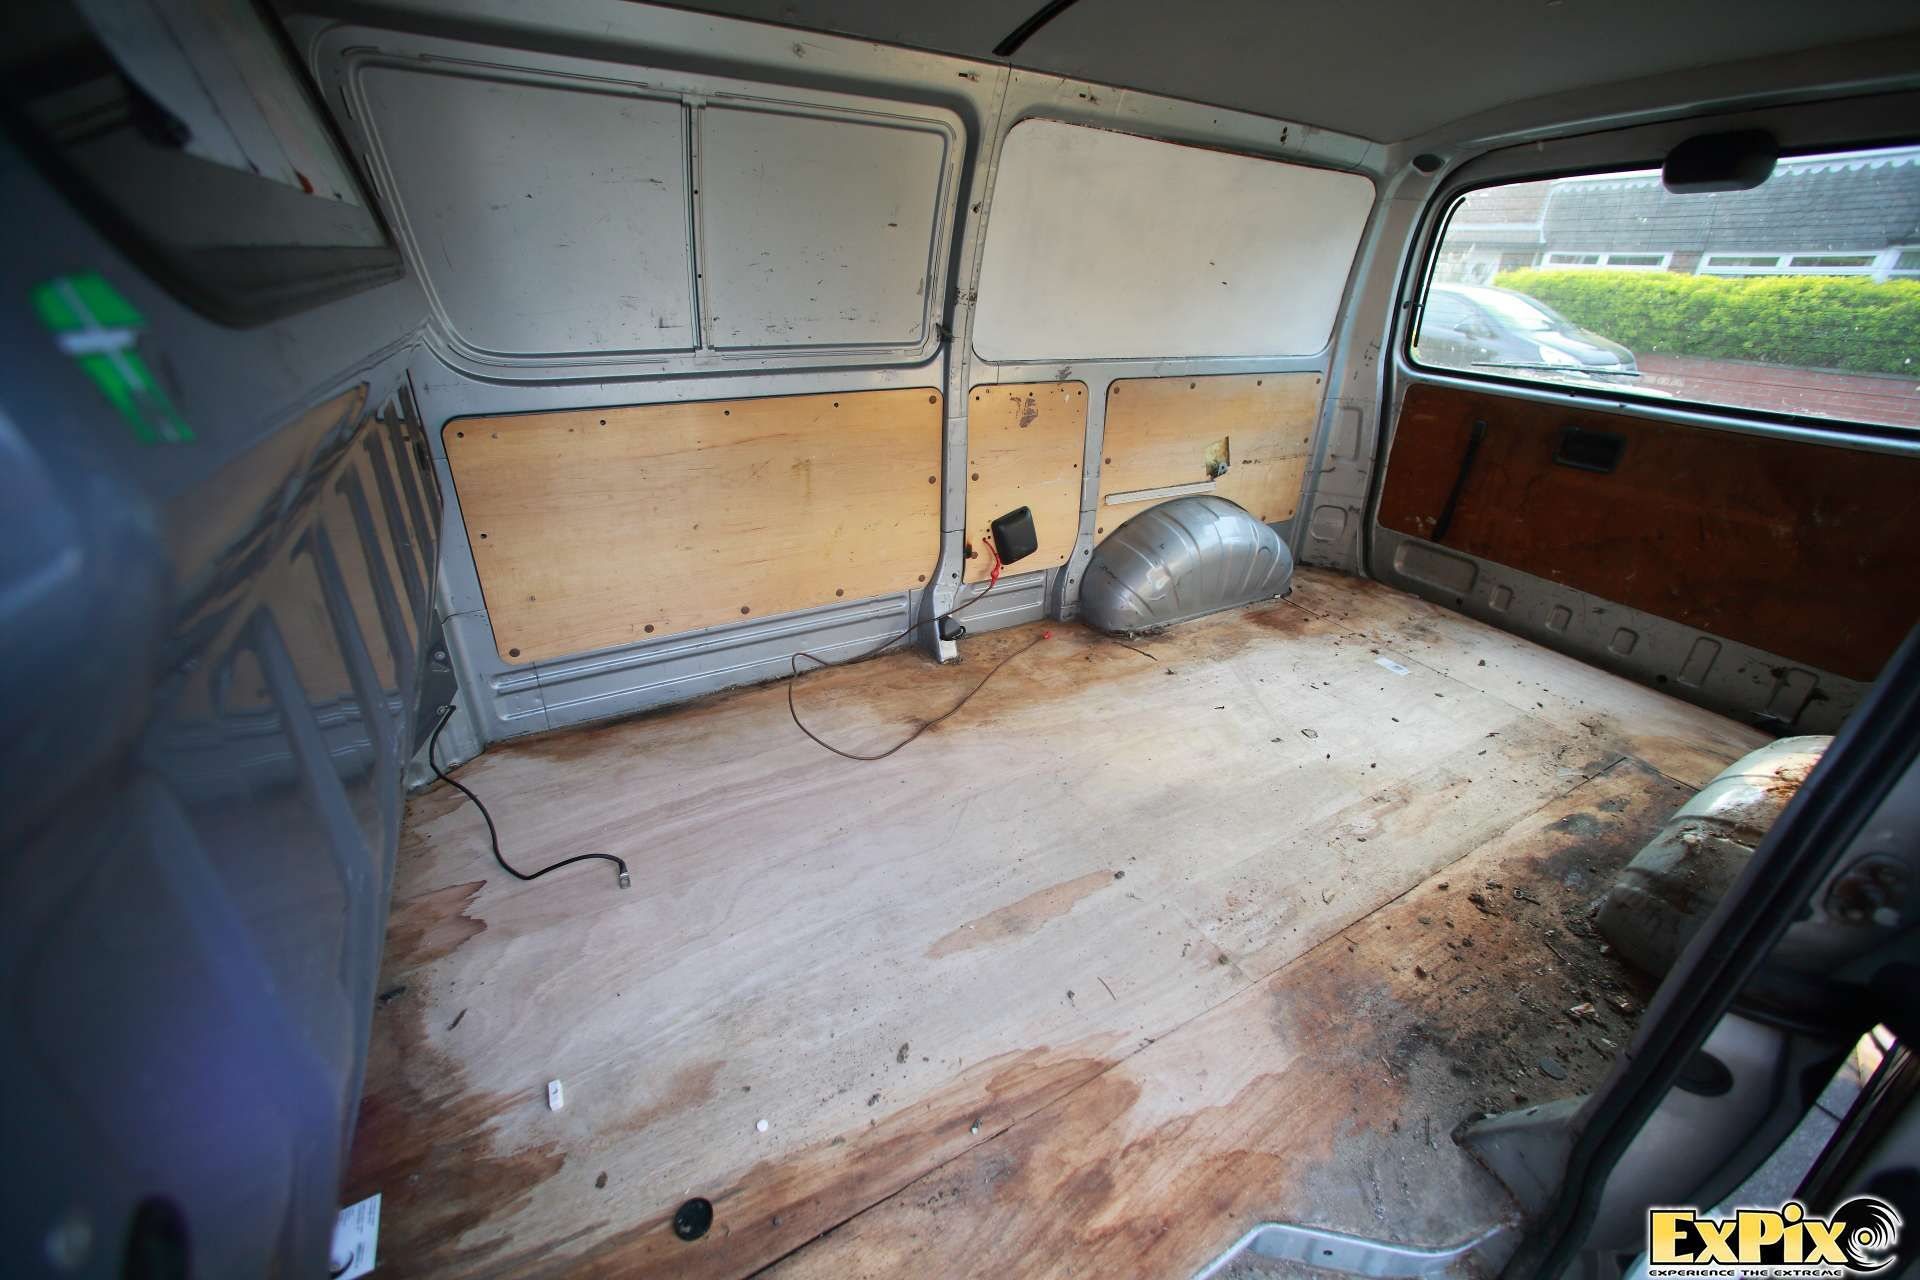 Empty Van Ready For Refit More Pics Of Ripping Out The Working Template